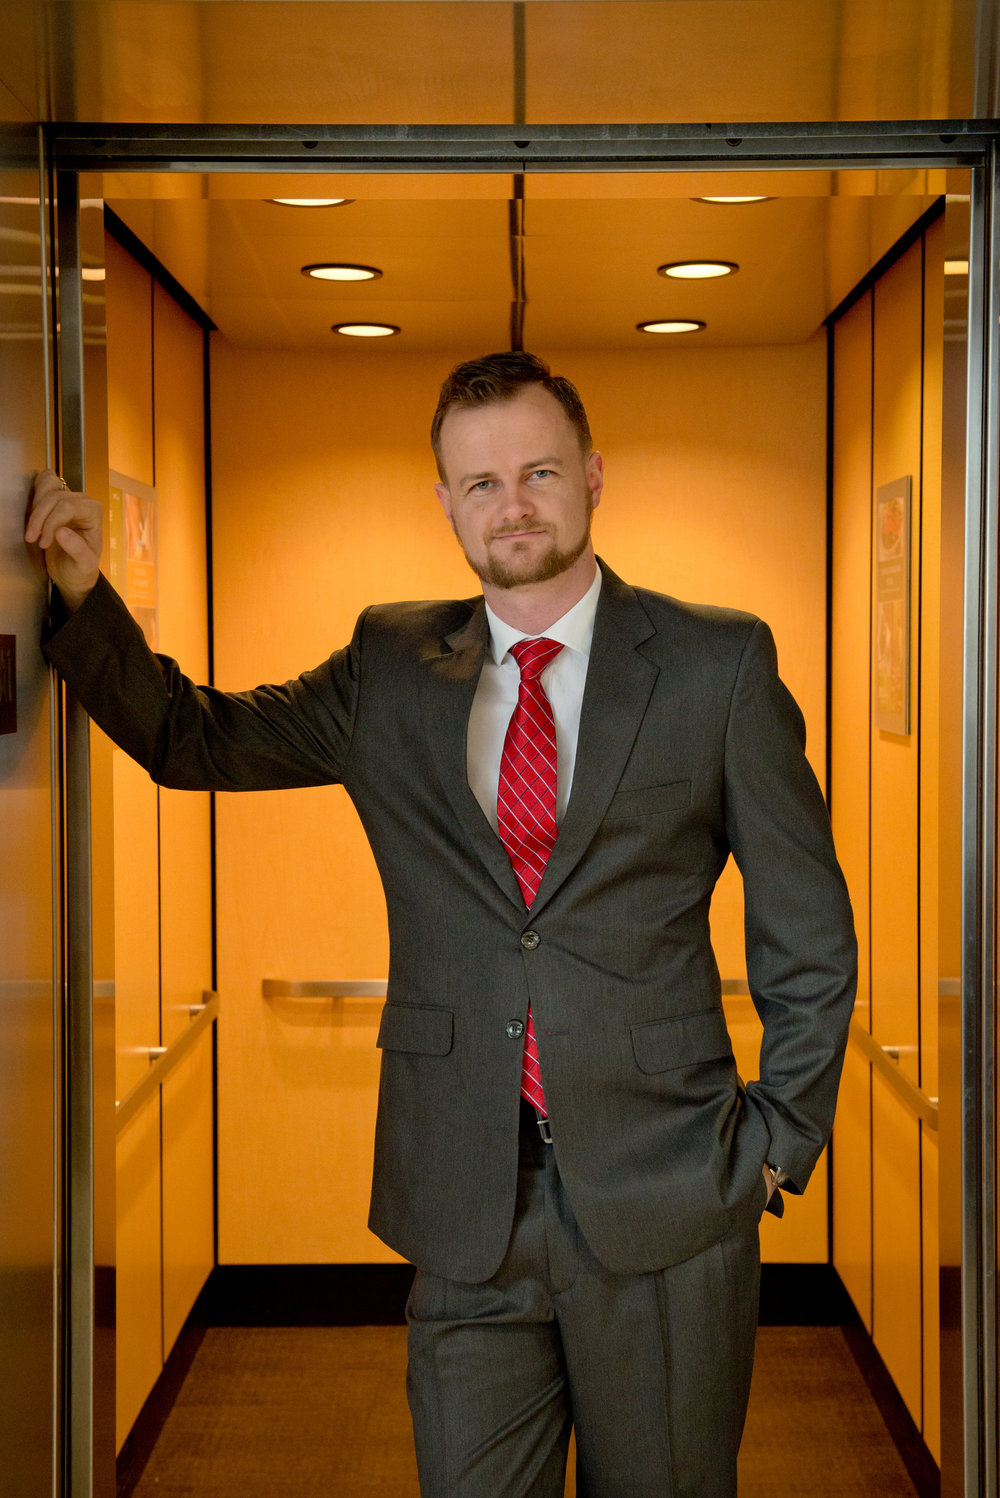 Orlando-senior-guy-elevator-suit.jpg